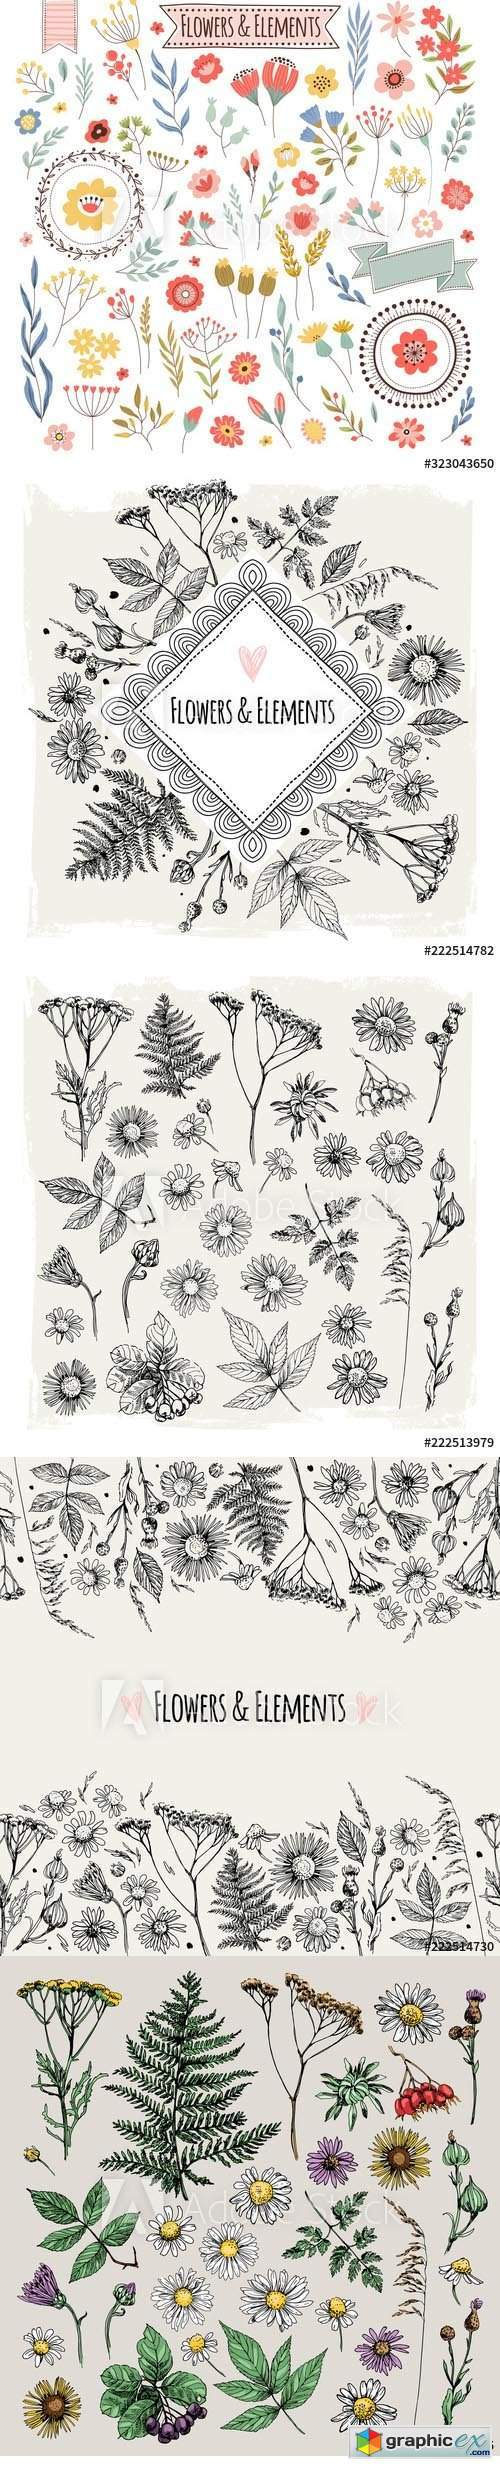 Set of illustrations of plants and flowers